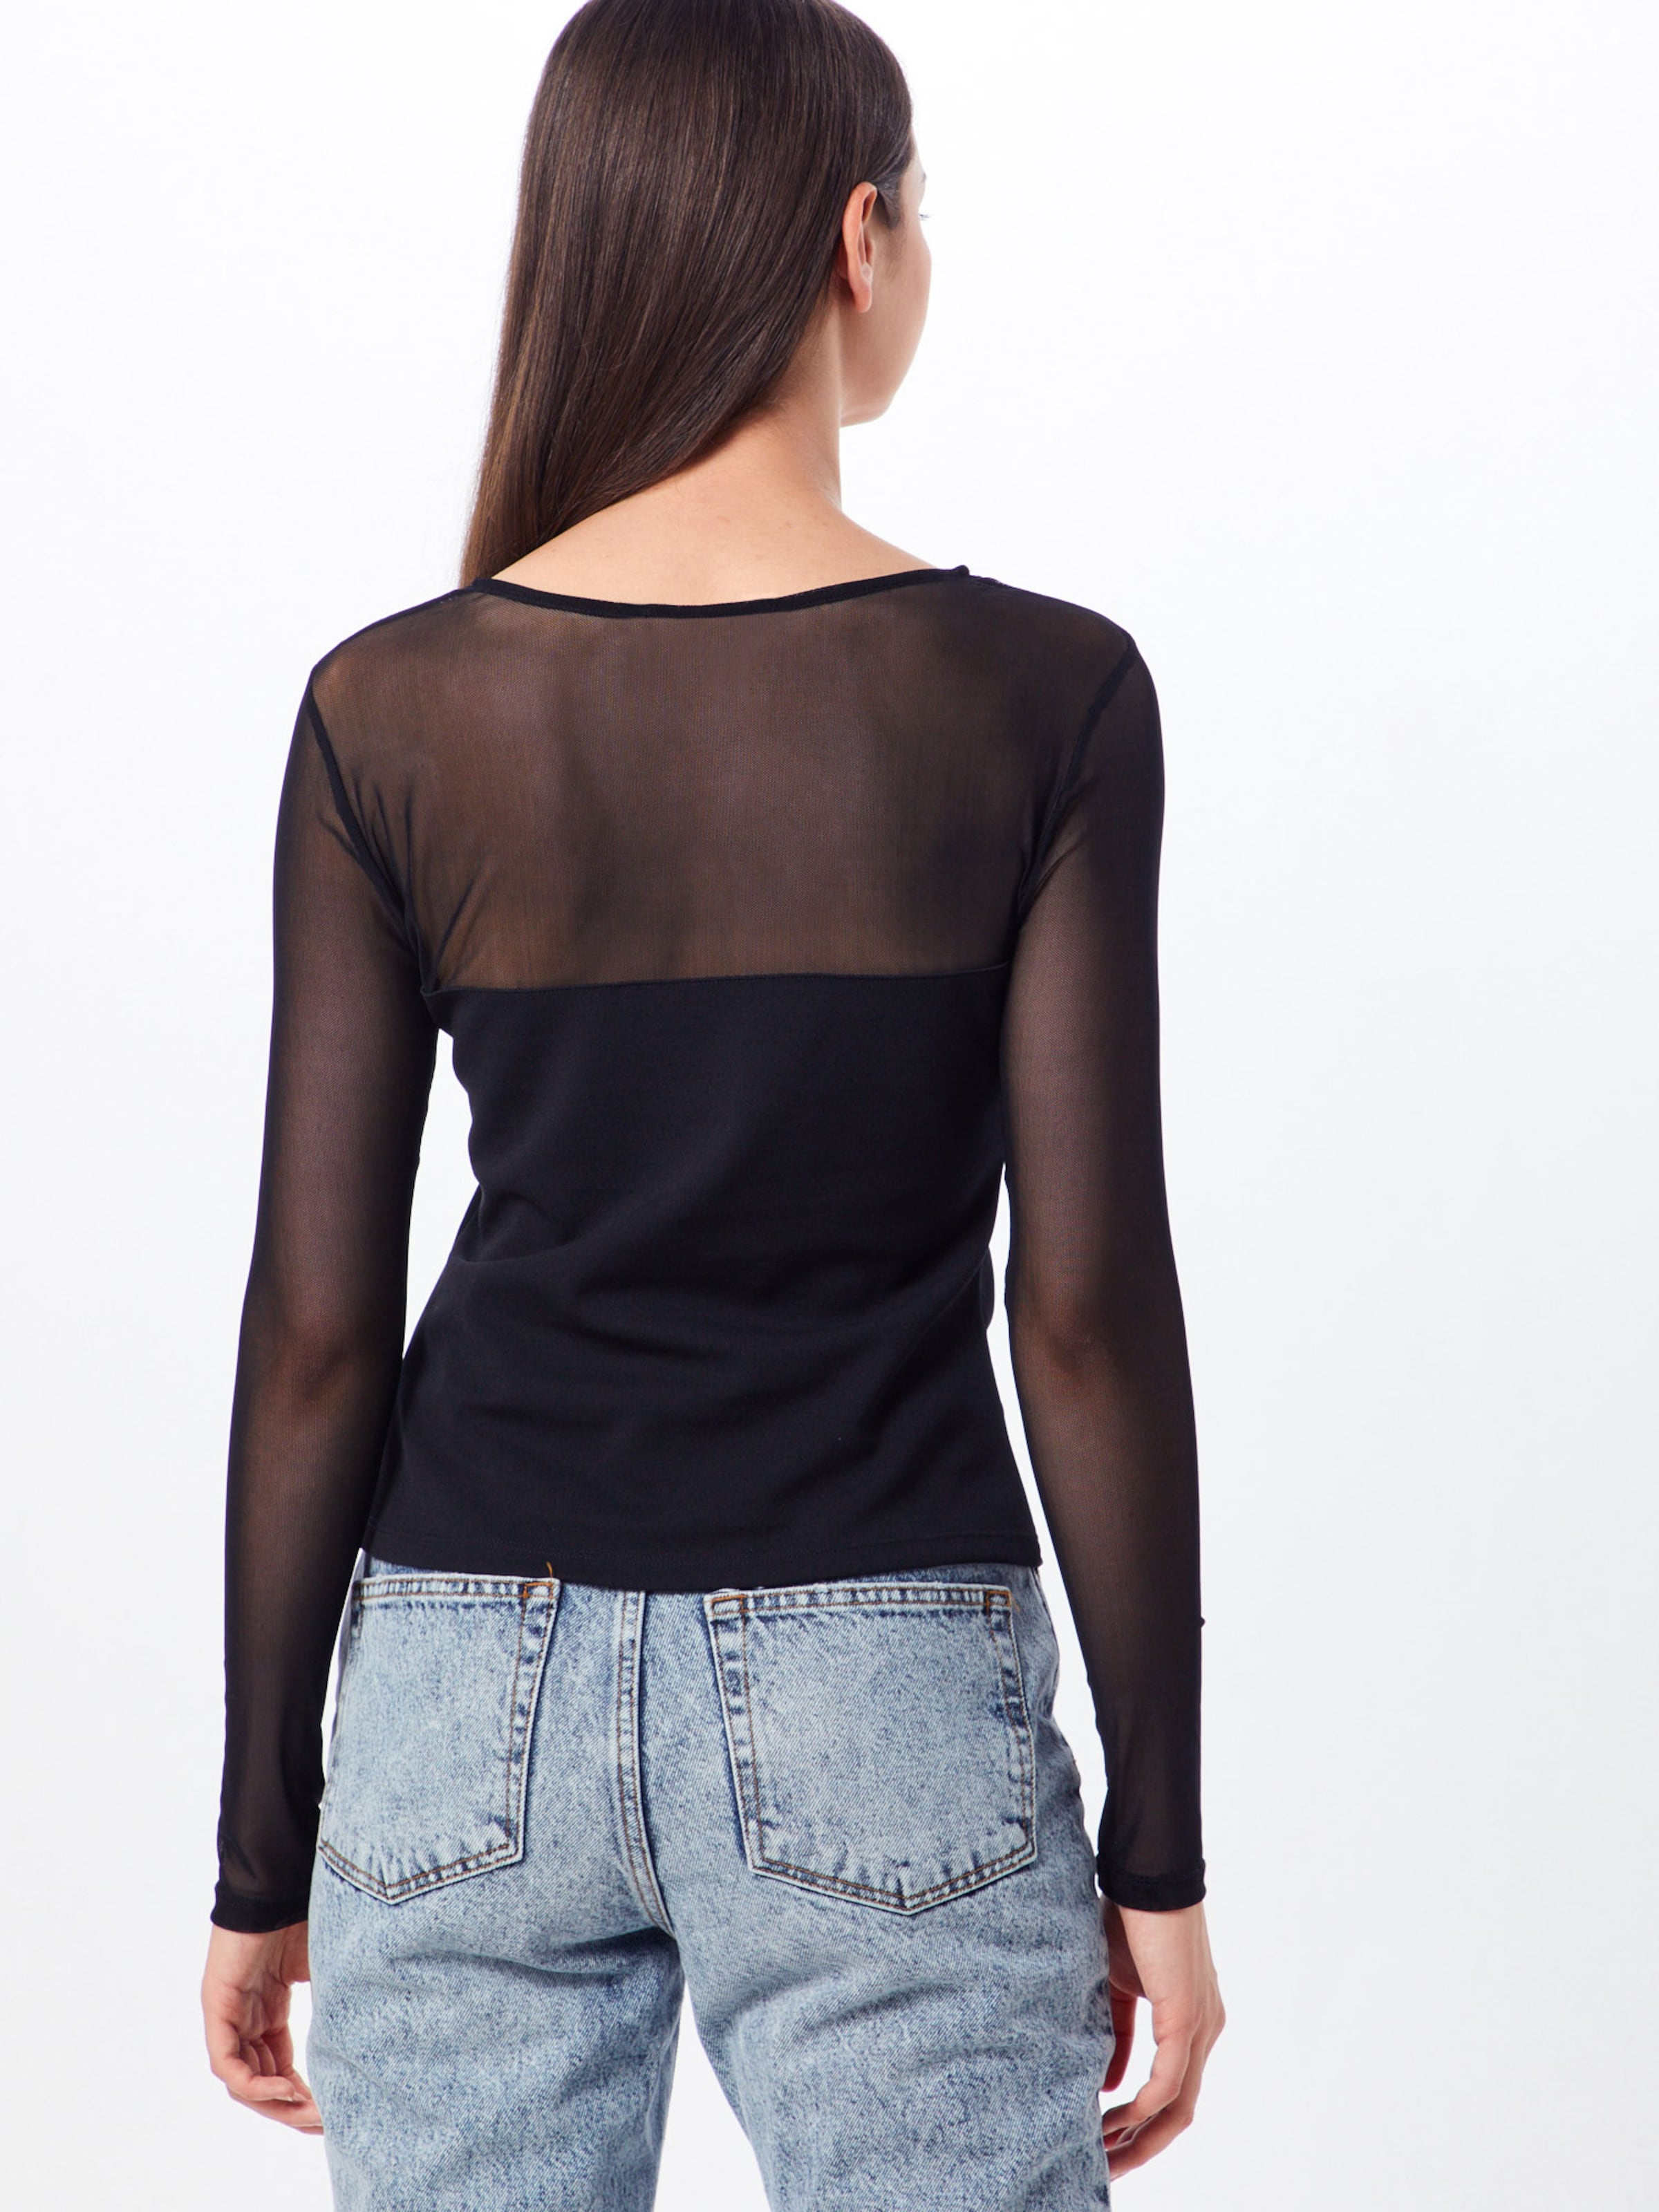 About 'evelyn' Schwarz Shirt You In hotdxCBsQr